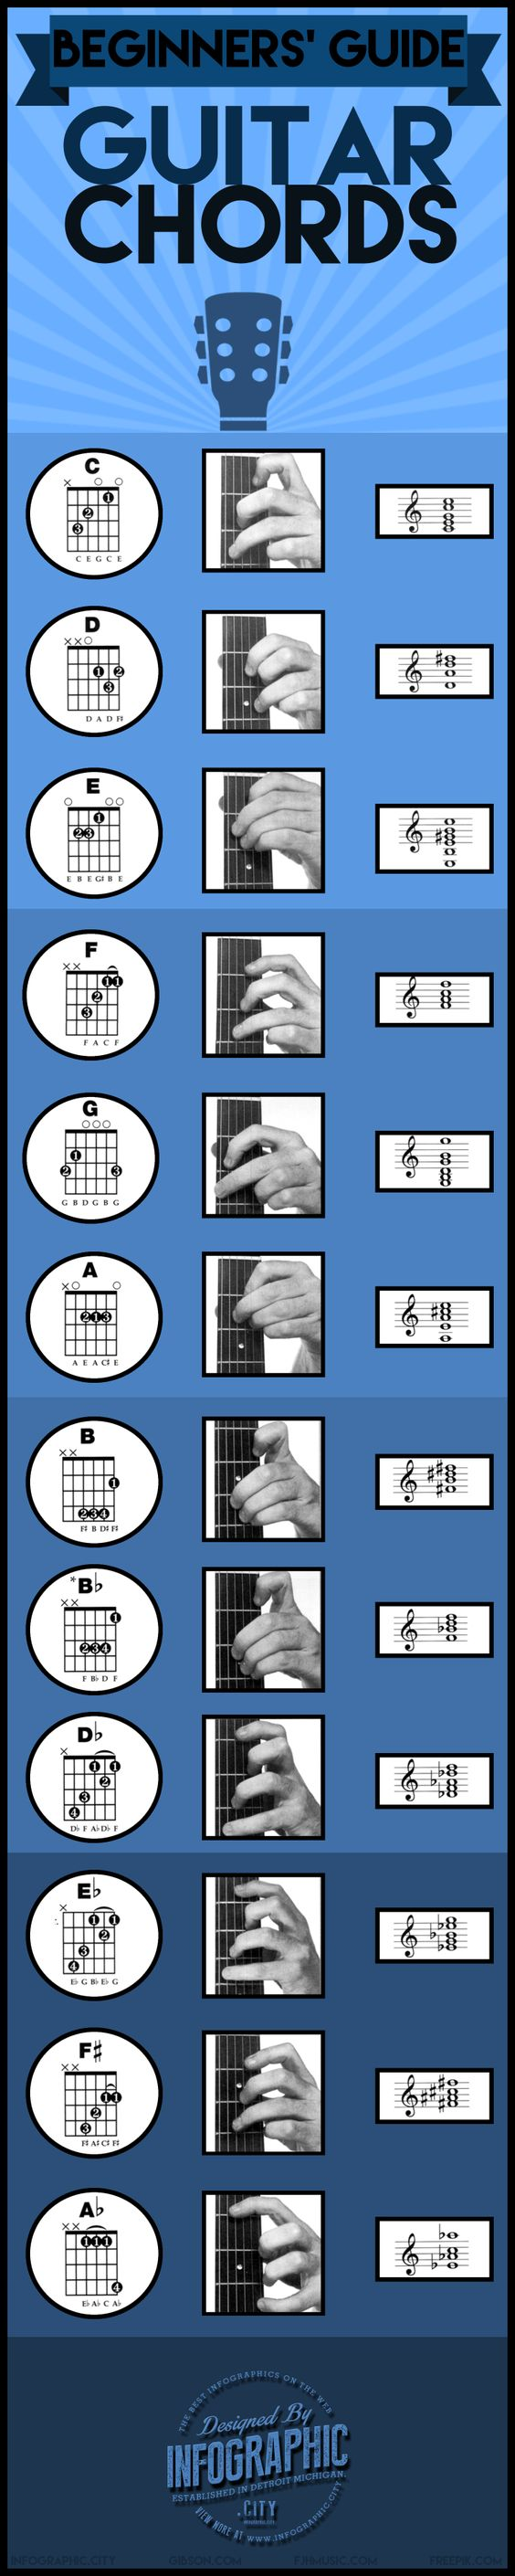 a beginners guide to guitar chords infographic infographics pinterest guitar chords. Black Bedroom Furniture Sets. Home Design Ideas